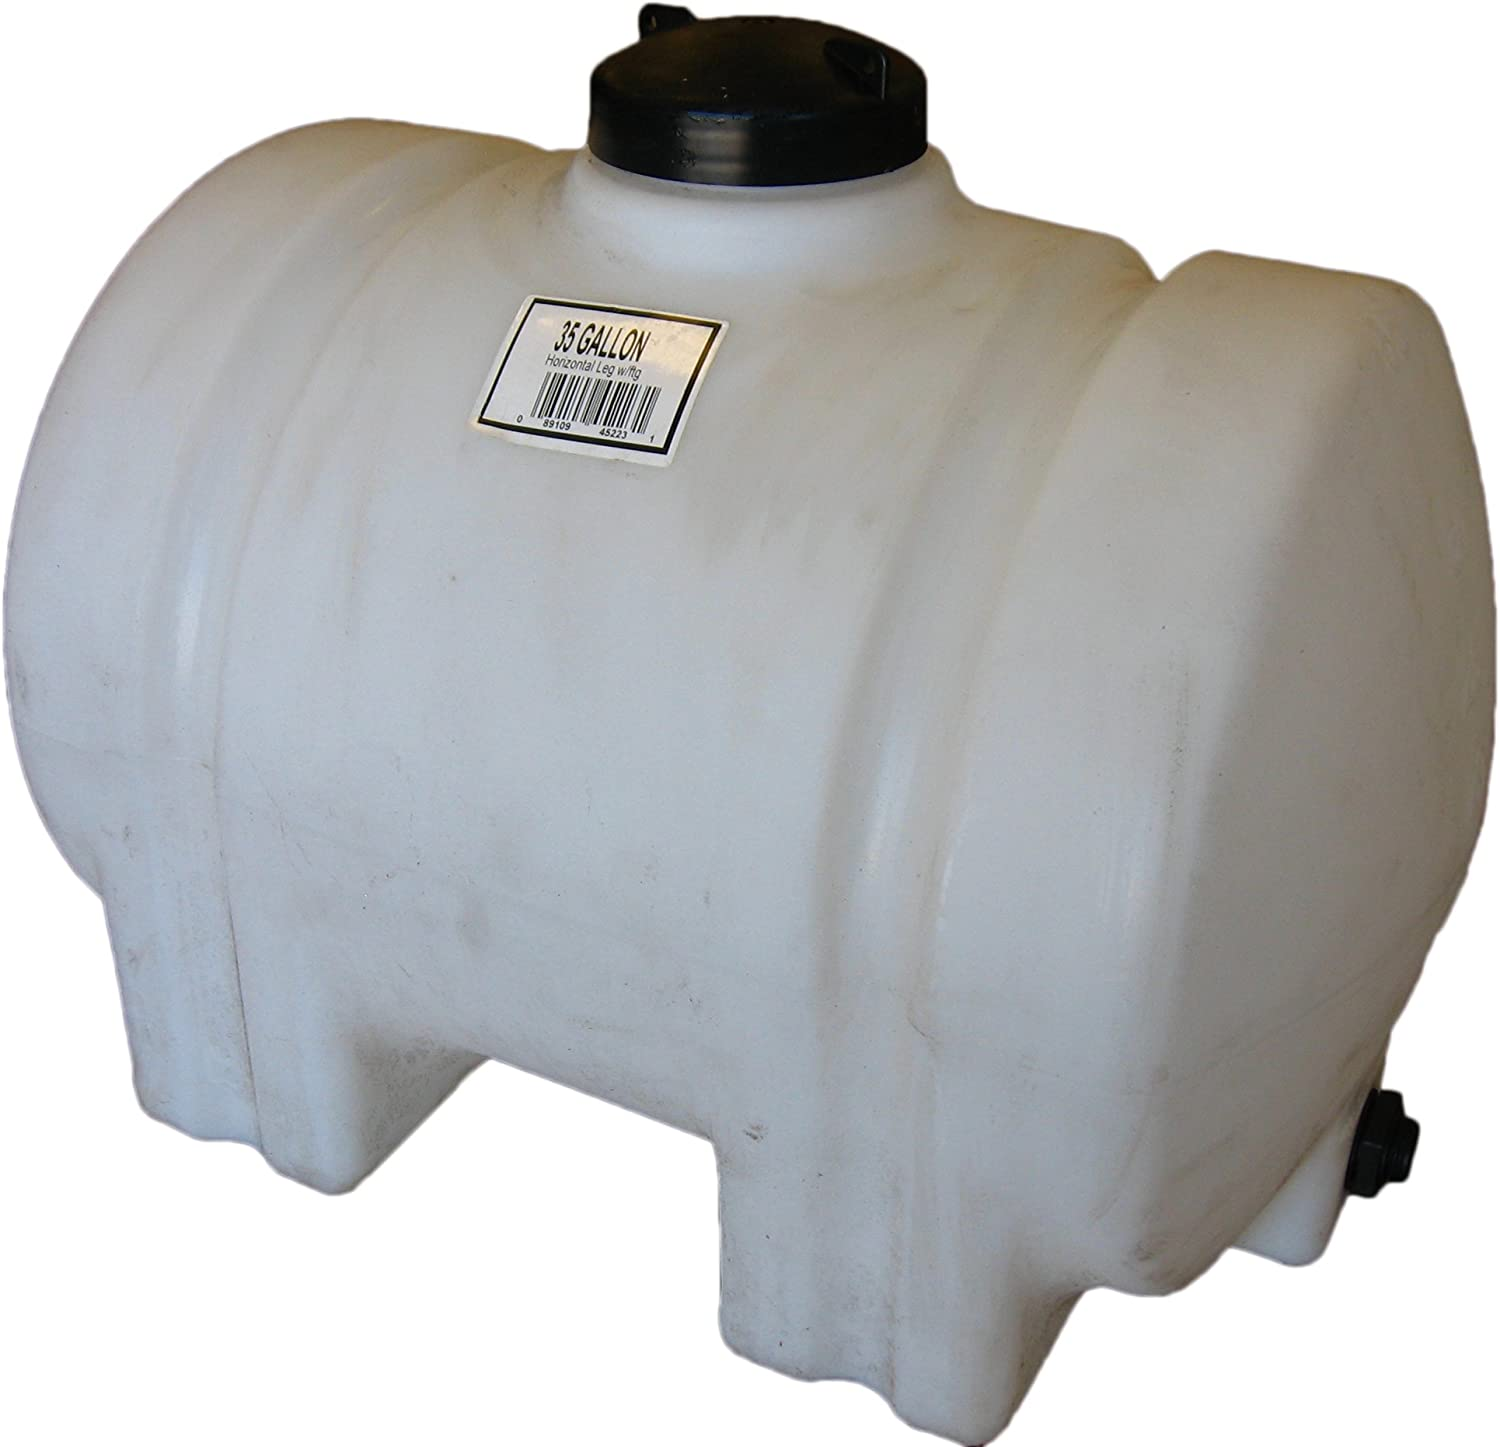 Norwesco 45223 35 Gallon Horizontal Water Tank: Hydraulic Tanks ...